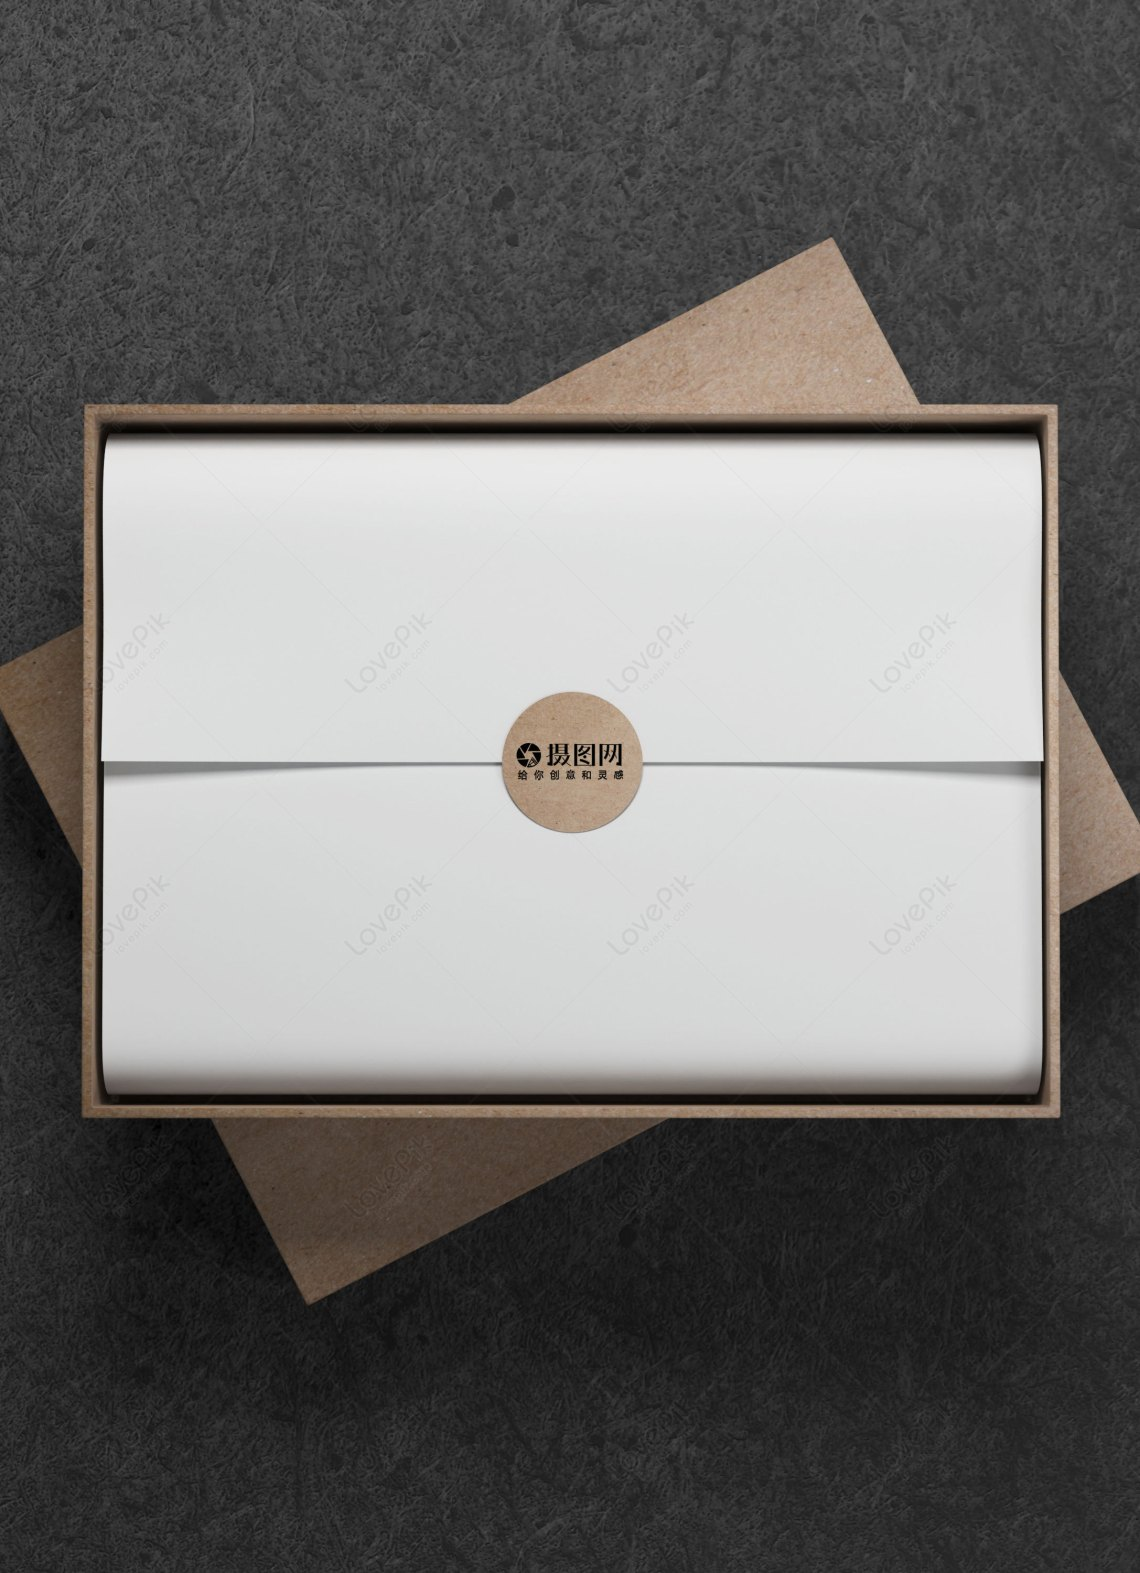 Download Wooden gift box mockup template image_picture free ...